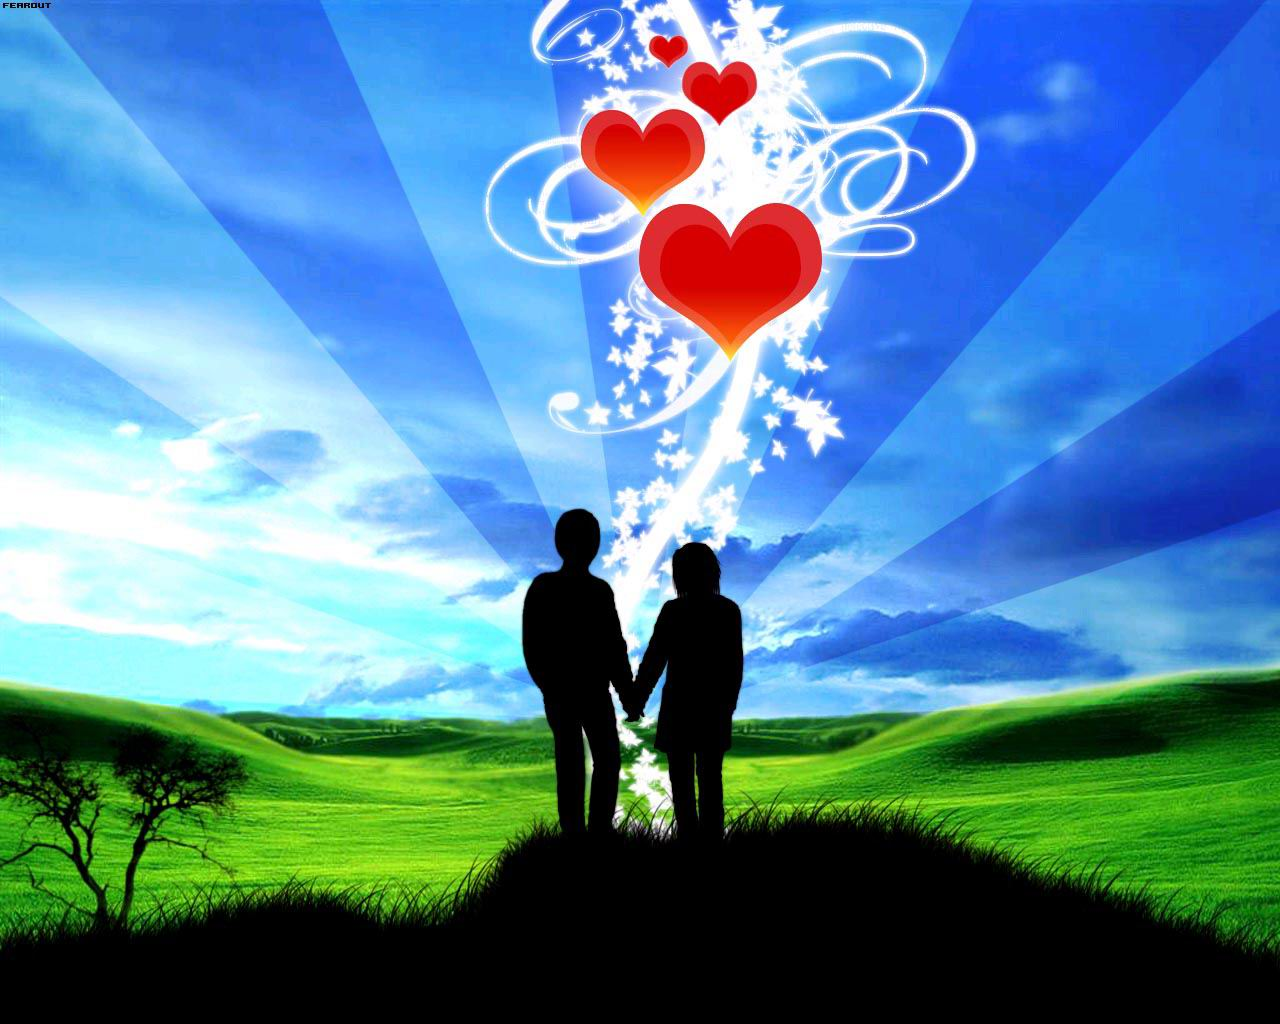 Love is Life: Love wallpapers | new love wallpapers | latest love wallpapers 2012 | love hd ...